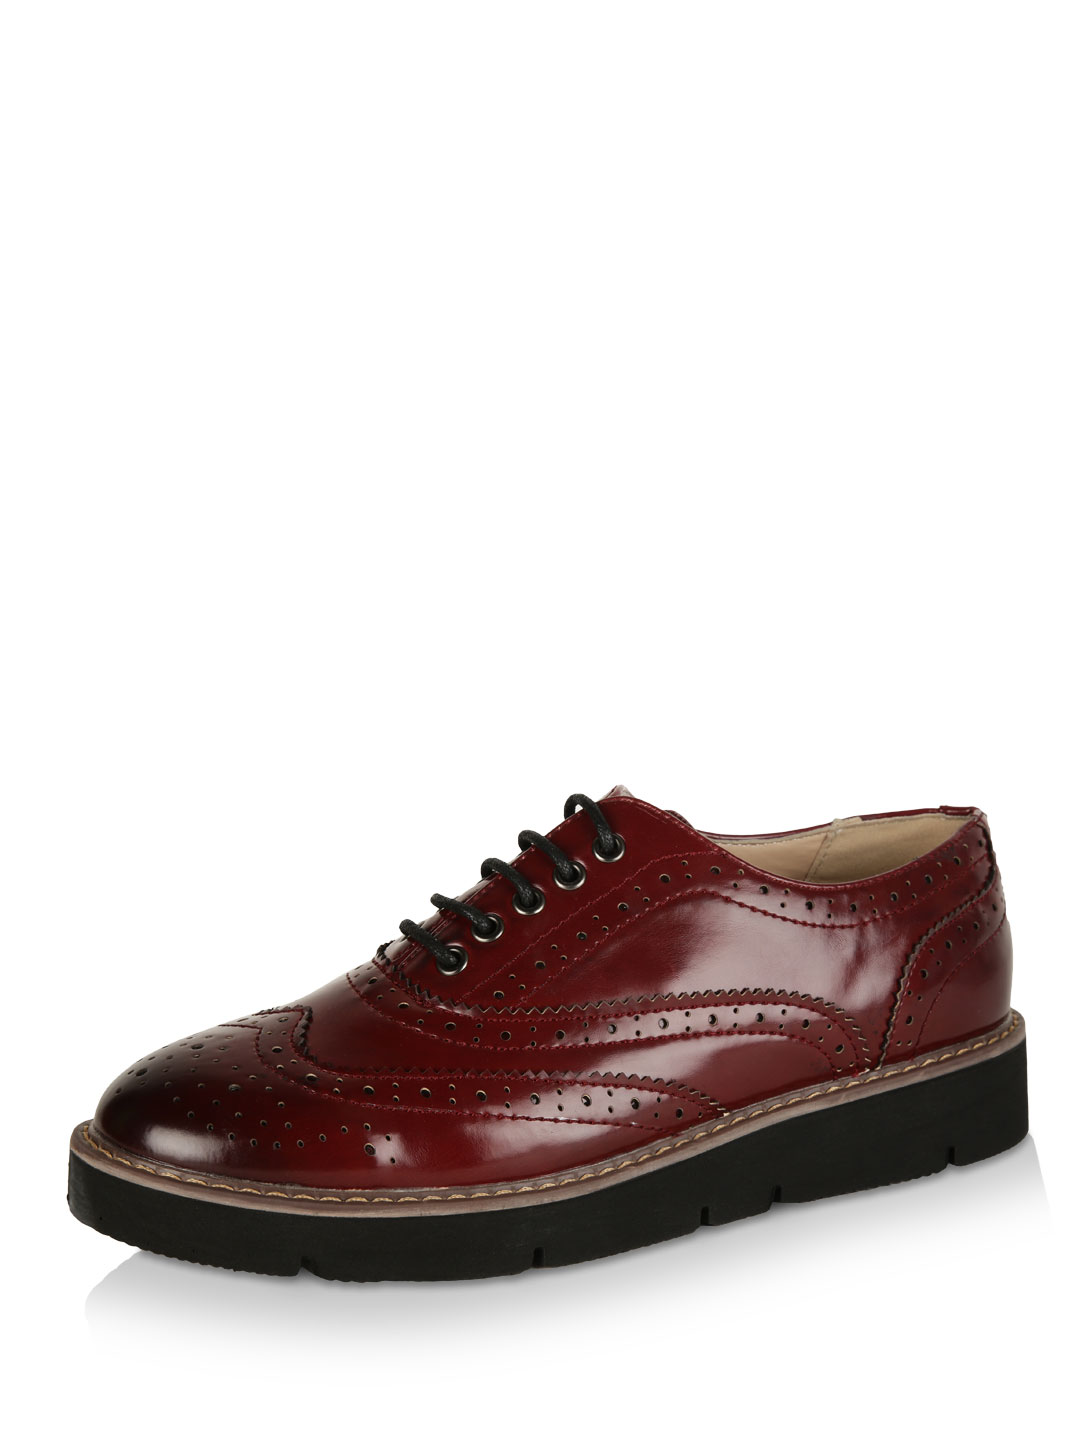 London Rebel Burgundy Stacked Lace-up Brogues 1